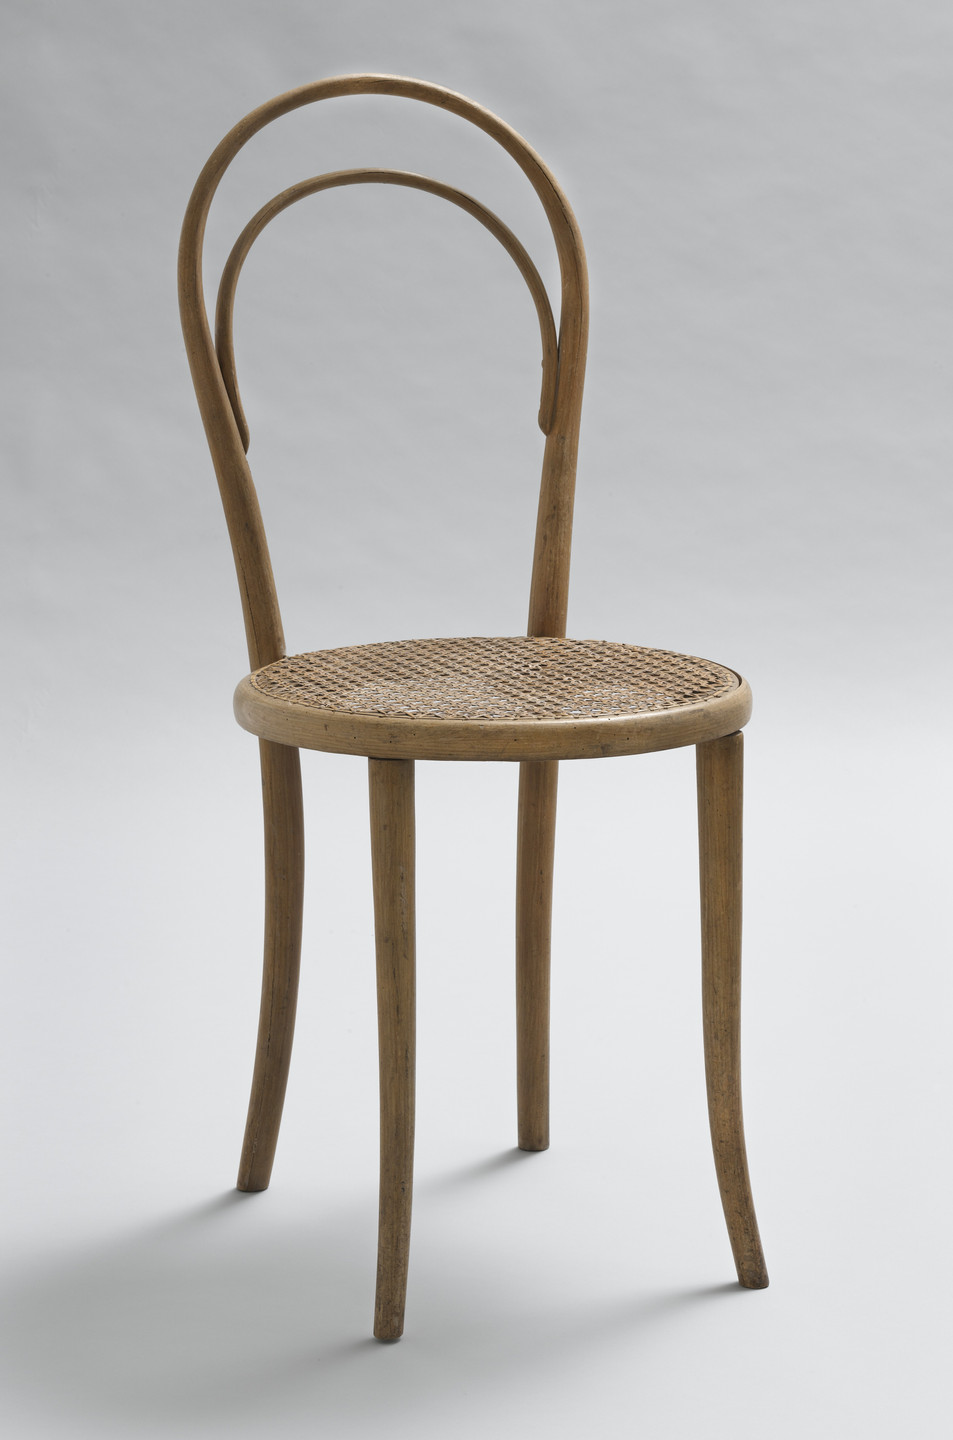 Michael Thonet. Chair No. 14. 1855-1858